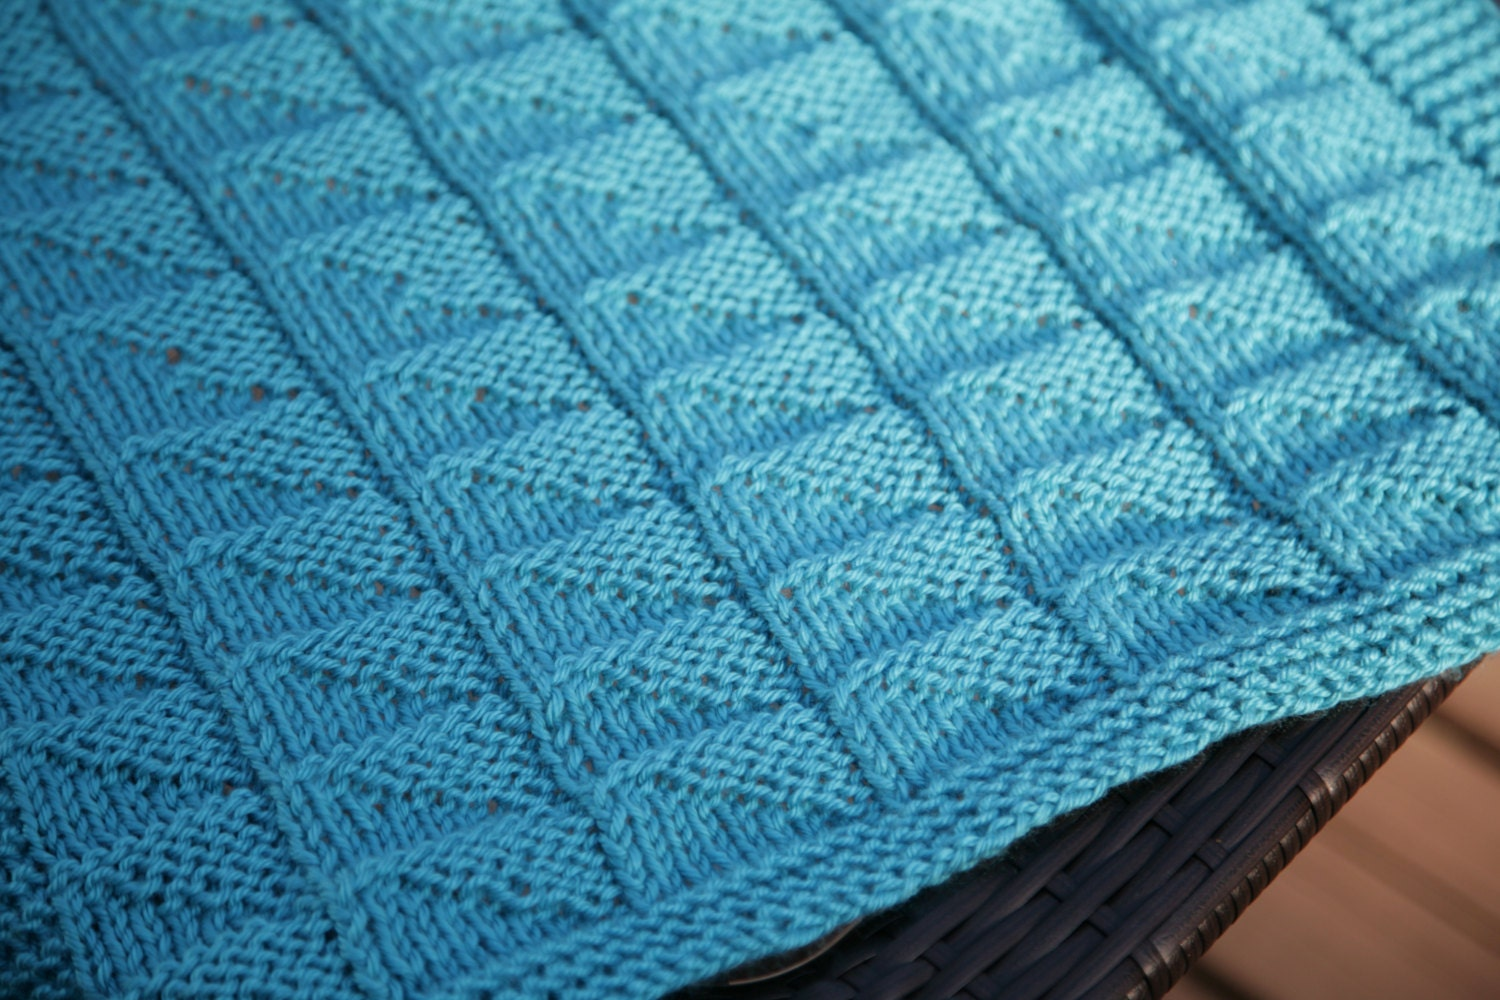 Reversible Knitting Patterns : Blue Light Catcher Textured Reversible Blanket baby blanket